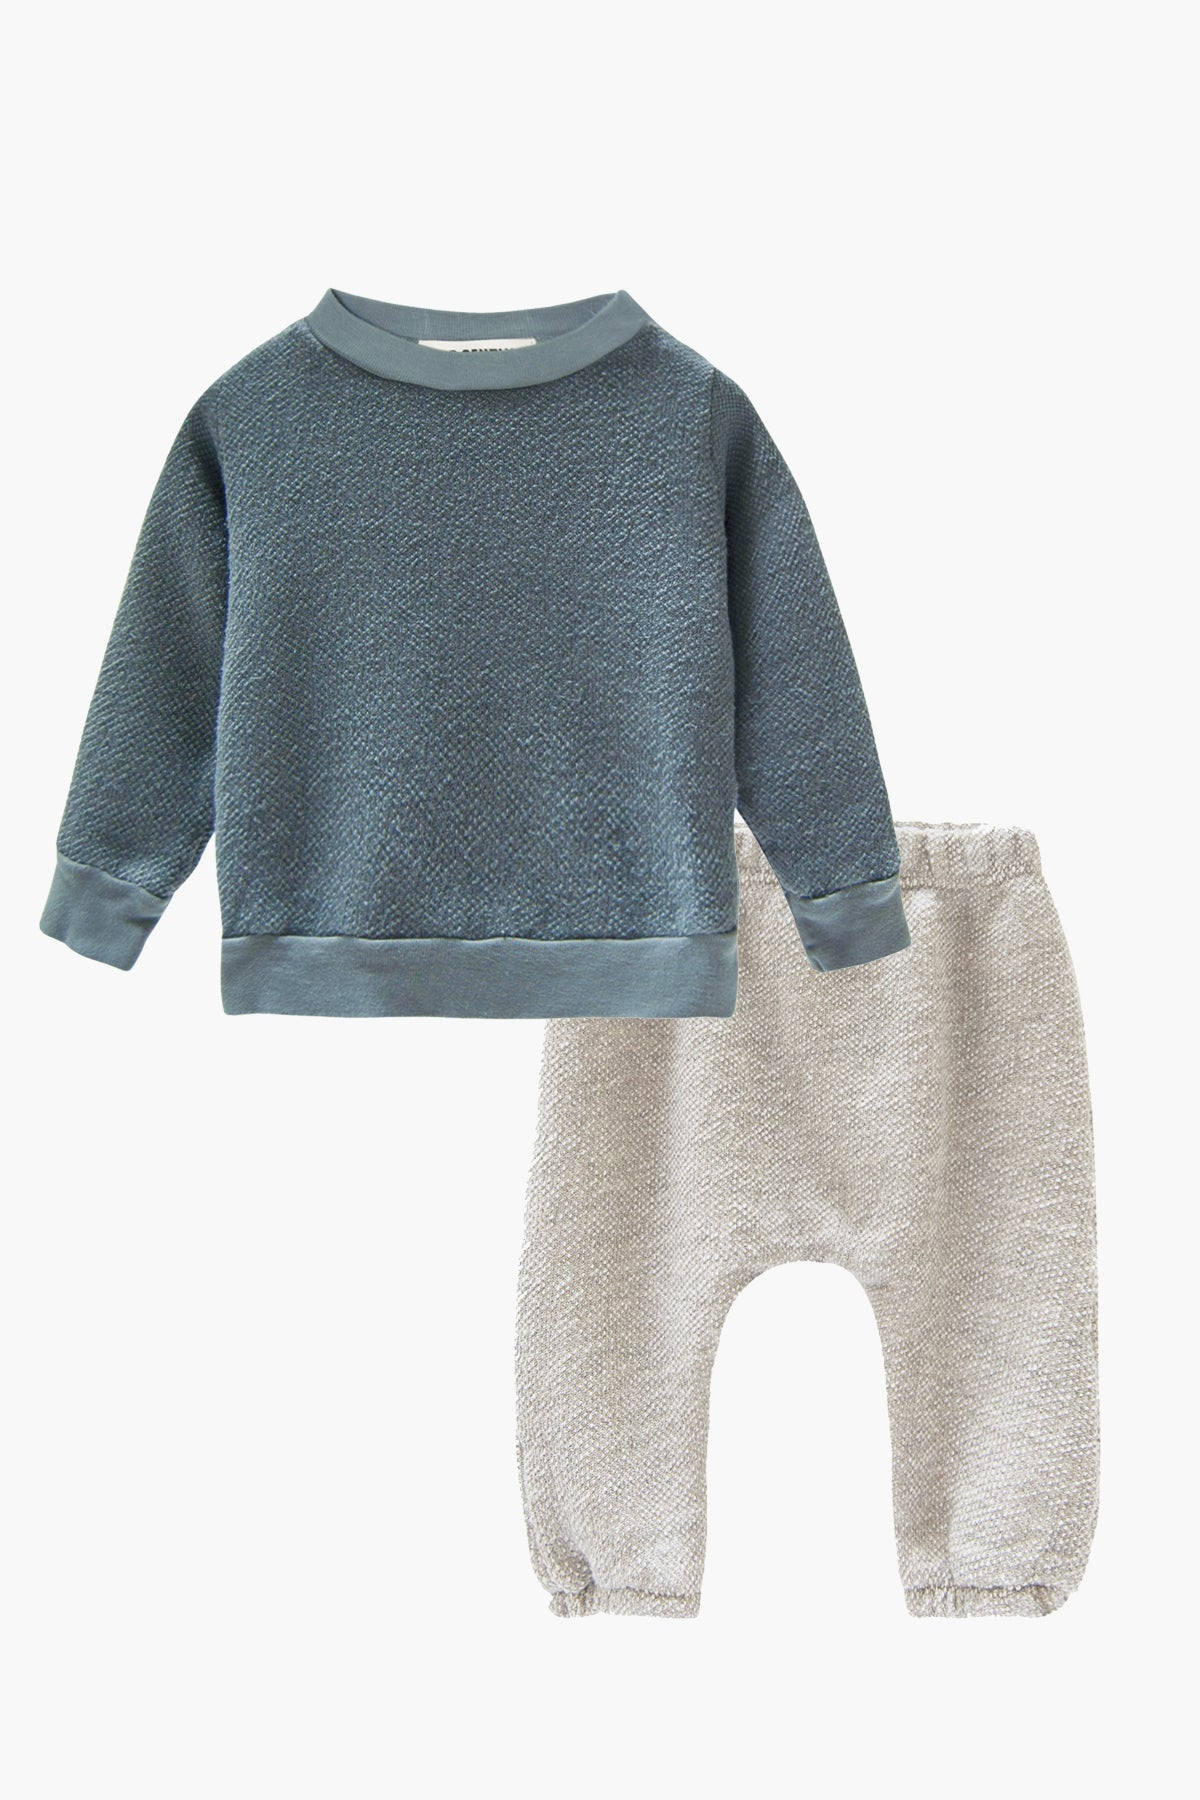 Go Gently Nation Textured 2-Piece Baby Set